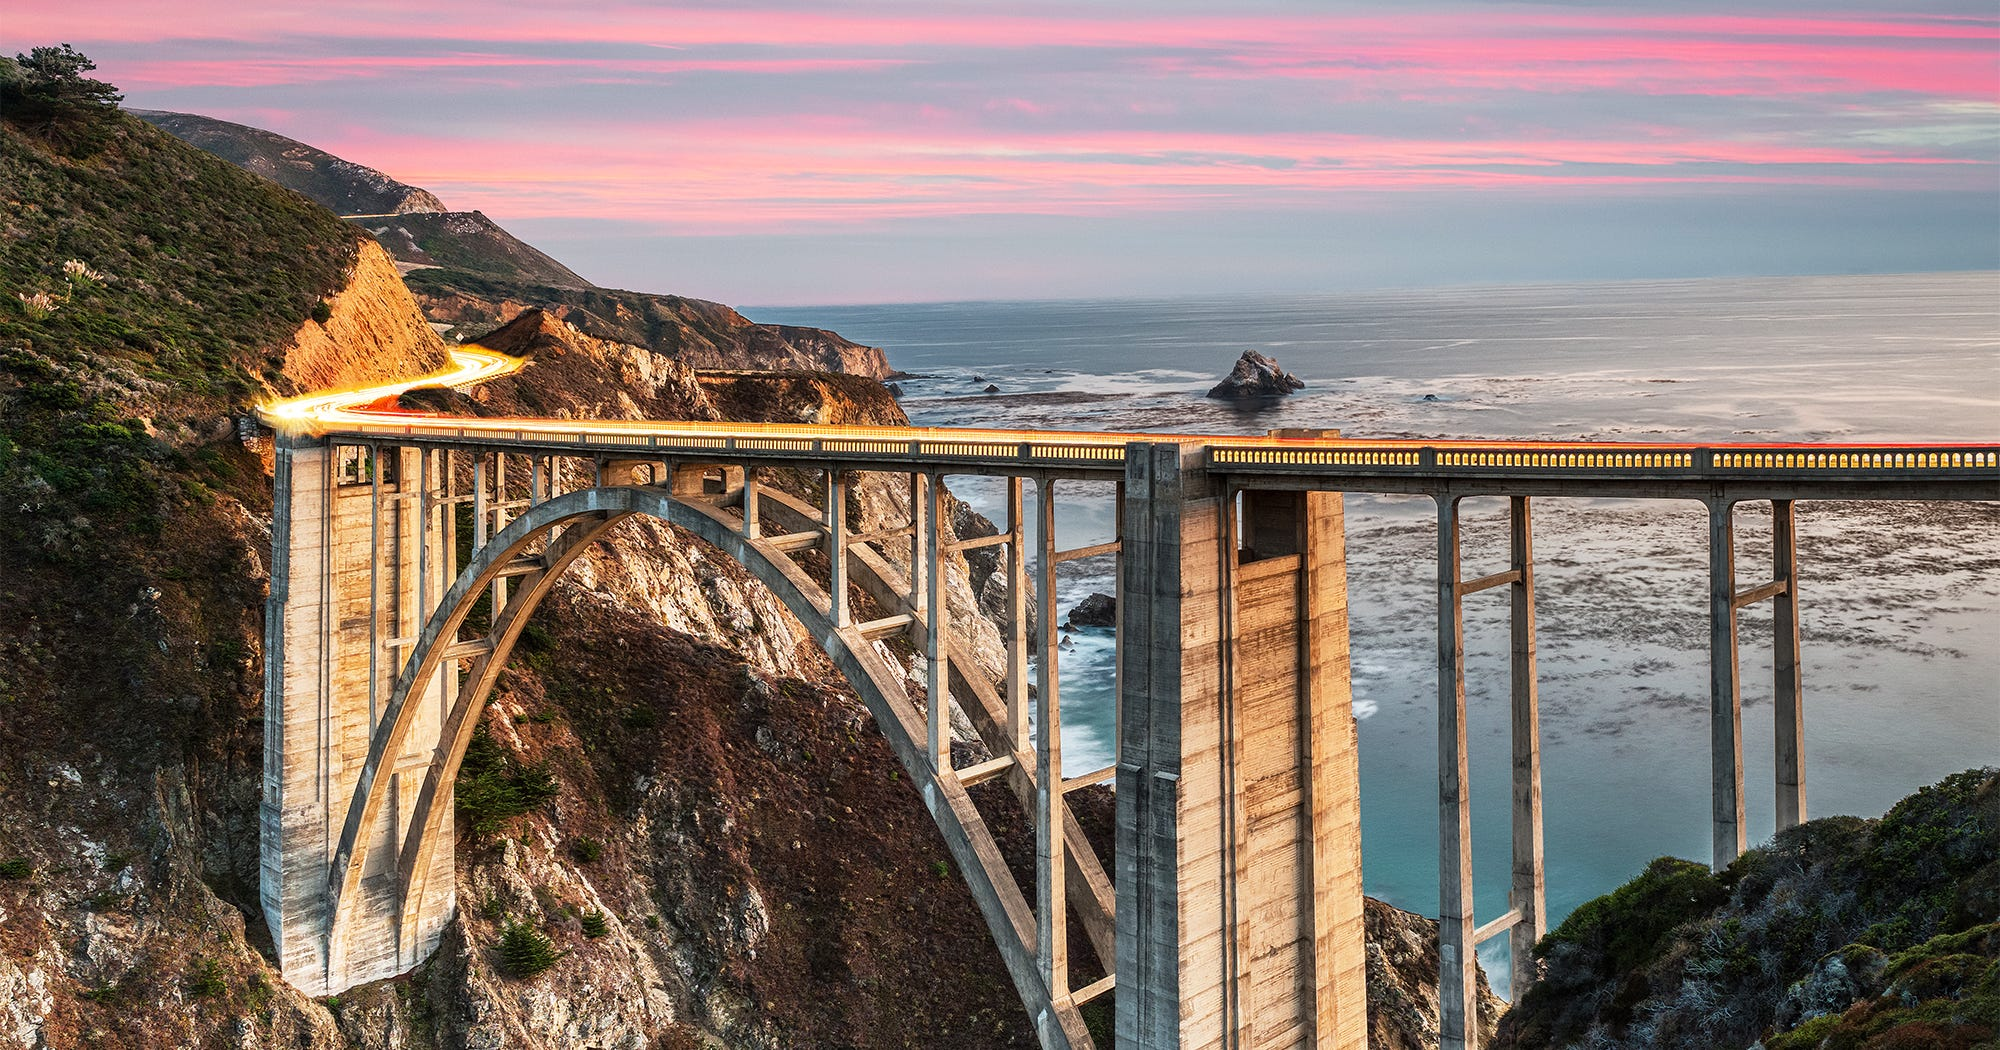 This Northern Cali Road Trip Is Chic AND Cheap